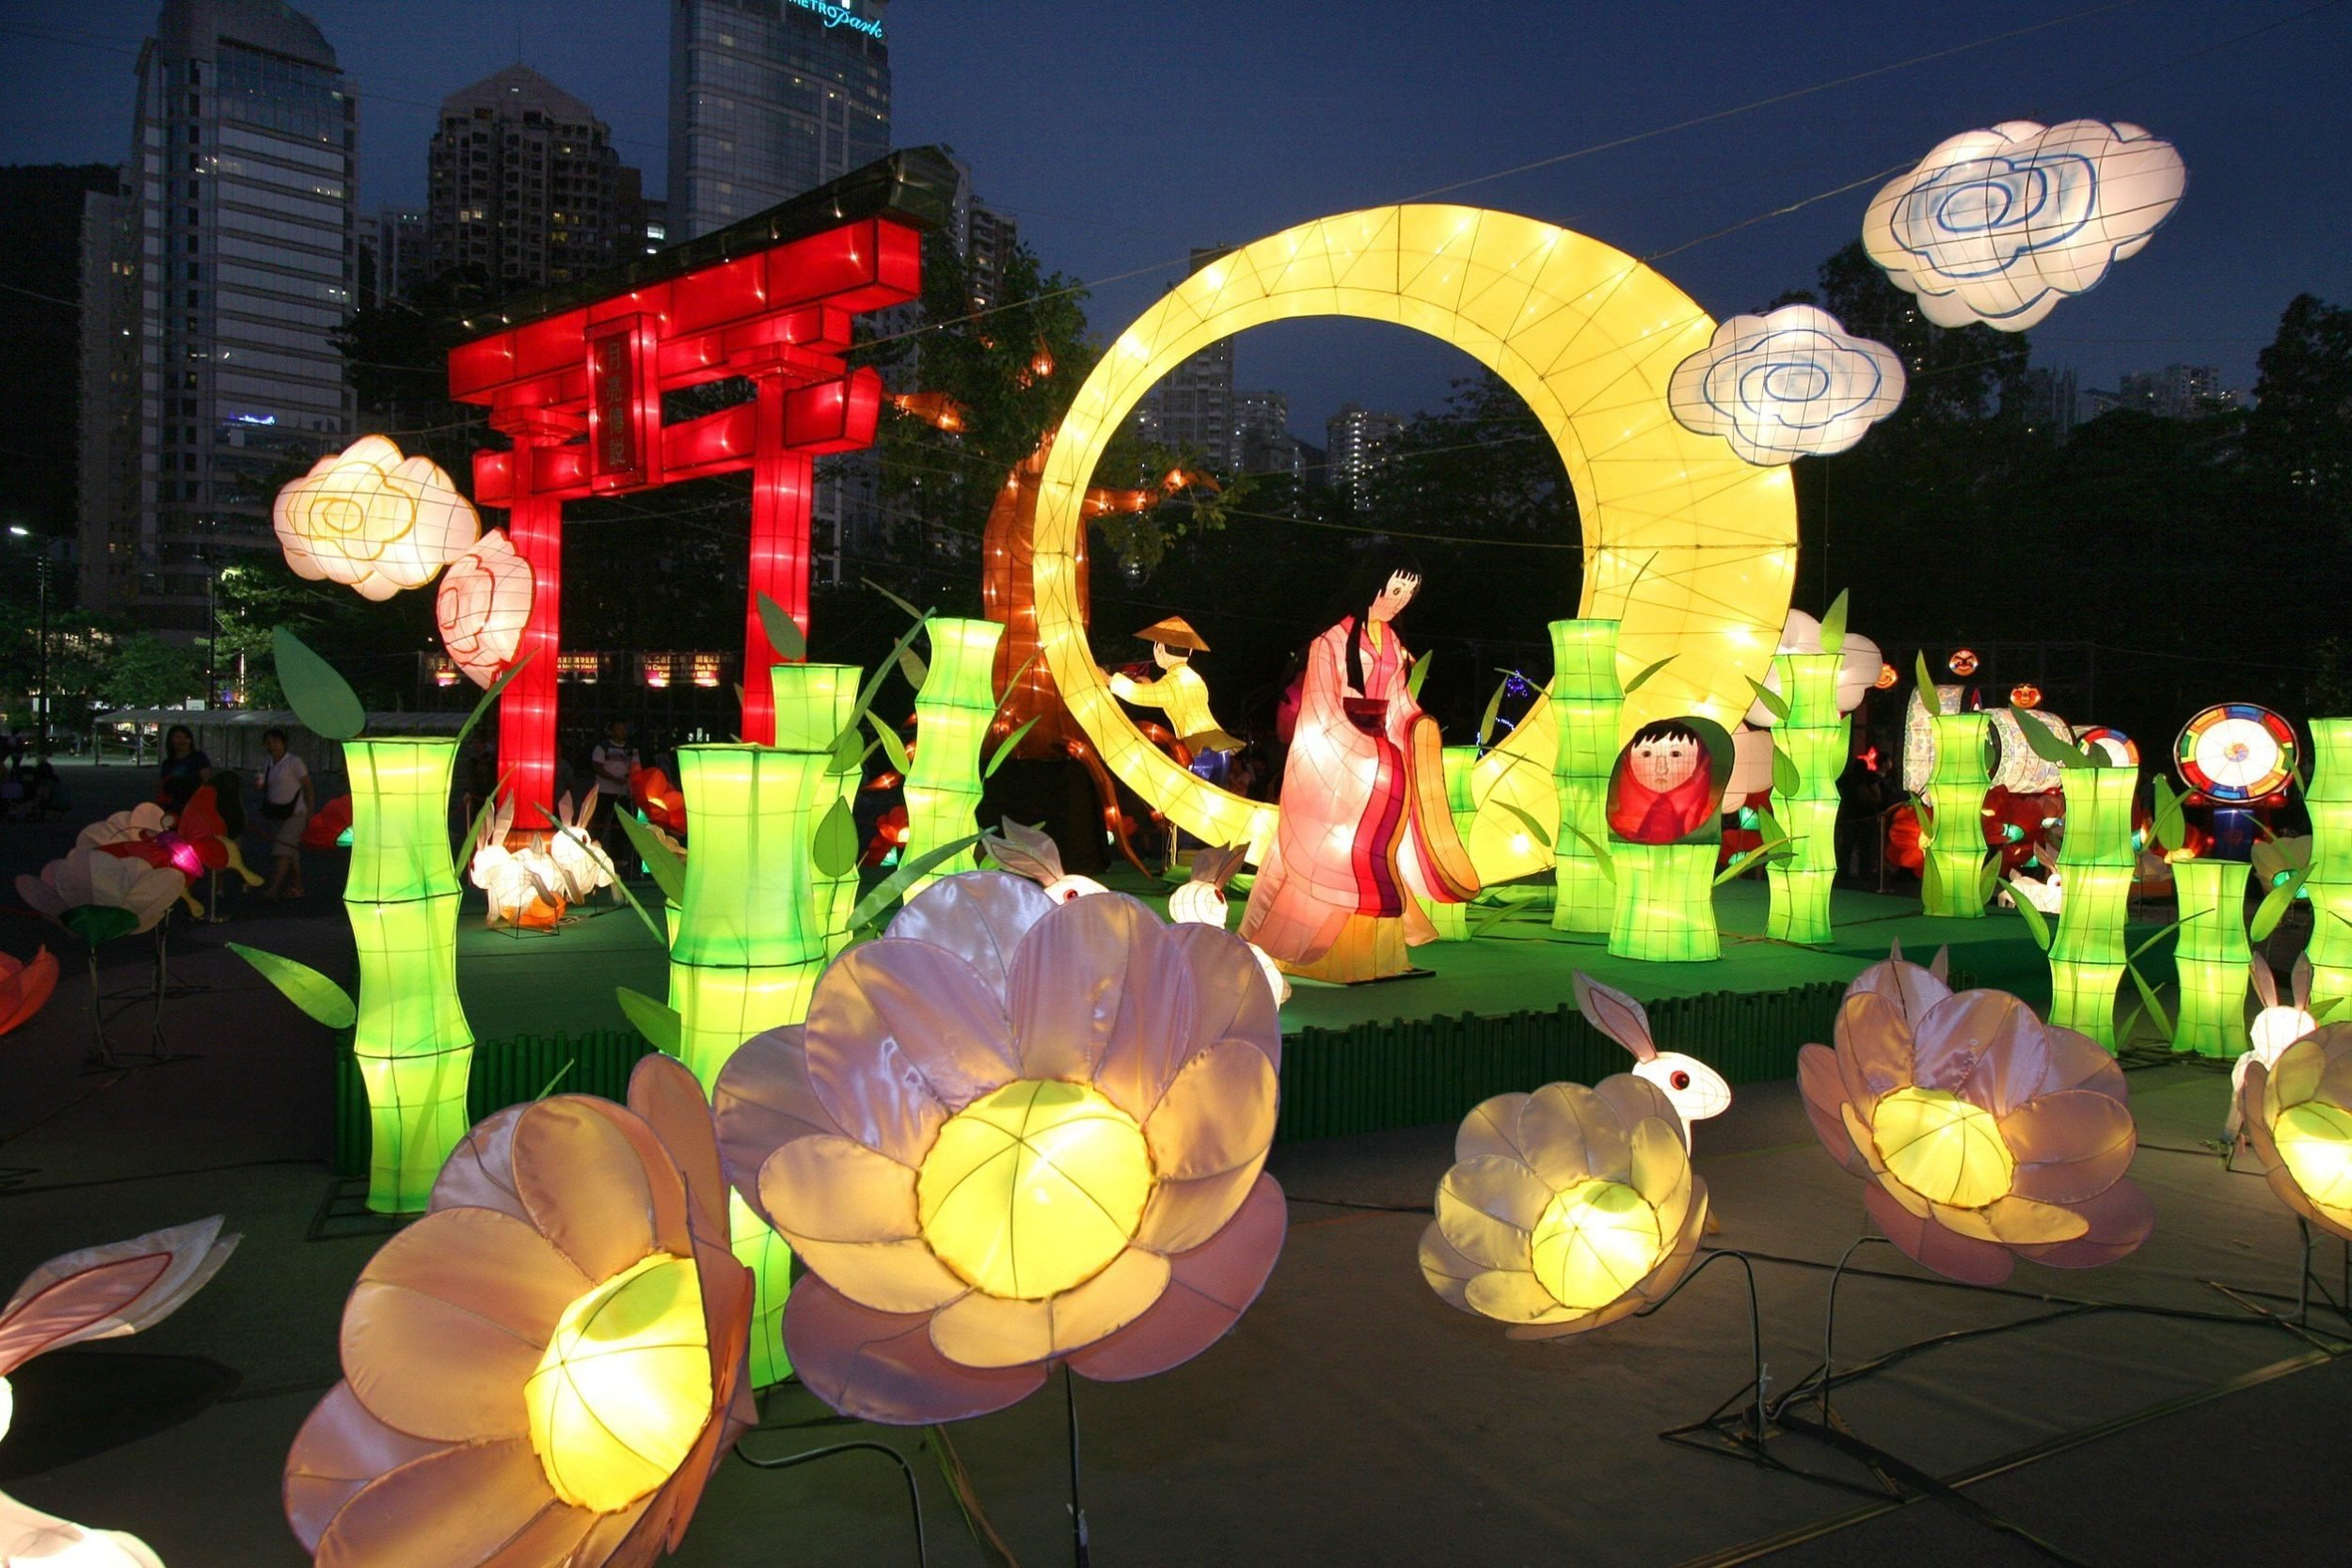 Celebrate Mid-Autumn Festival with Mooncakes & Lanterns - La